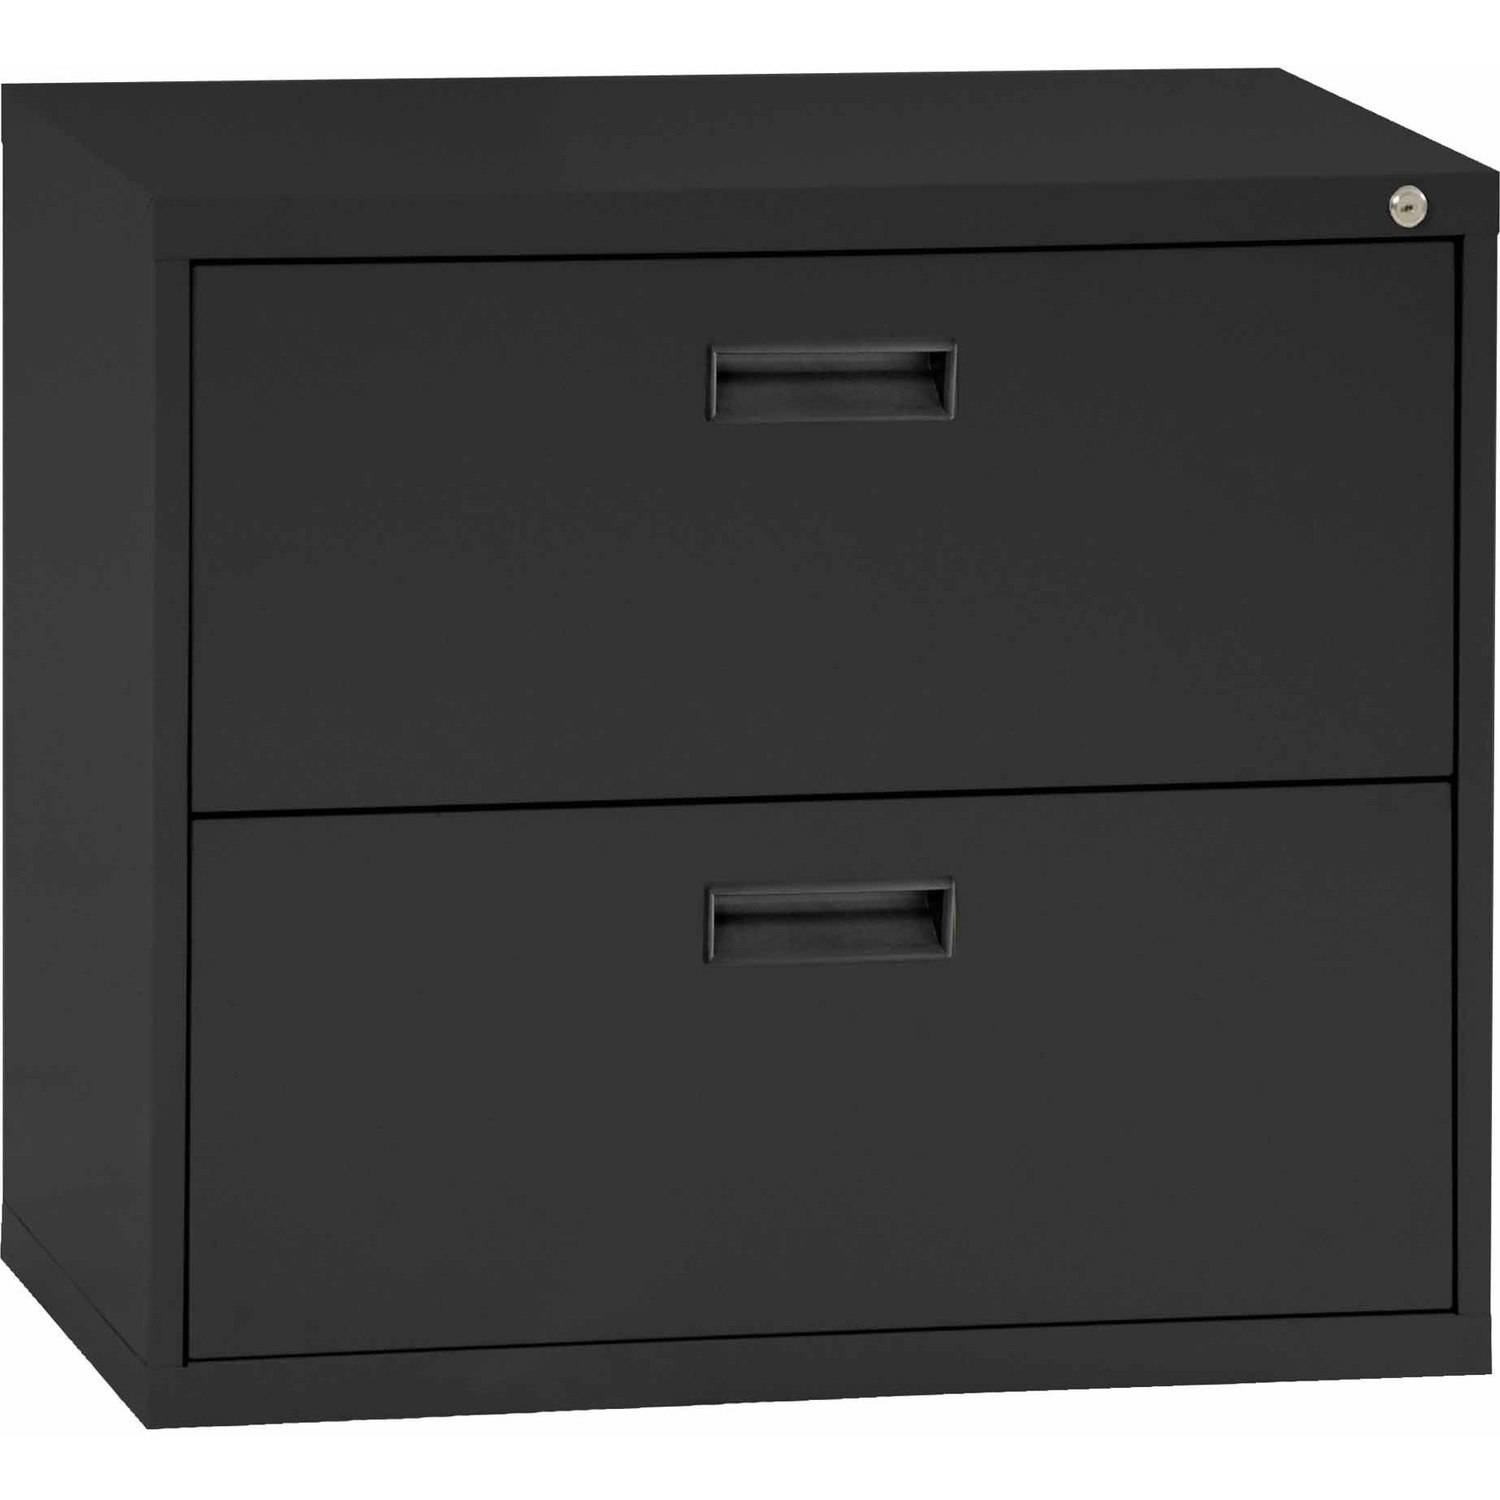 Sandusky Steel Lateral File Cabinet With Plastic Handle, 2 Drawers, E202L 09